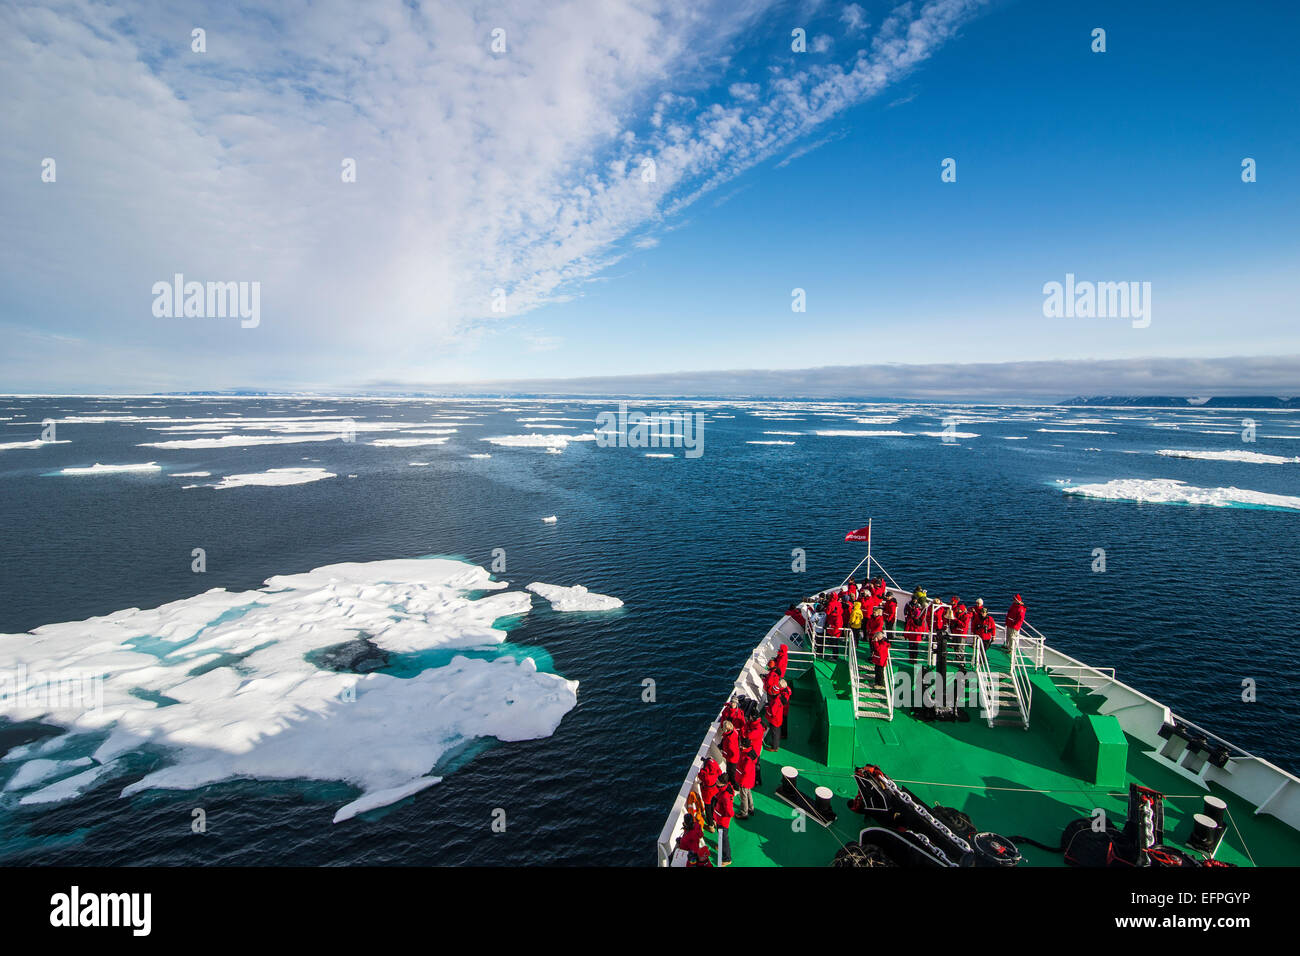 Expedition boat entering the pack ice in the Arctic shelf, Svalbard, Arctic - Stock Image